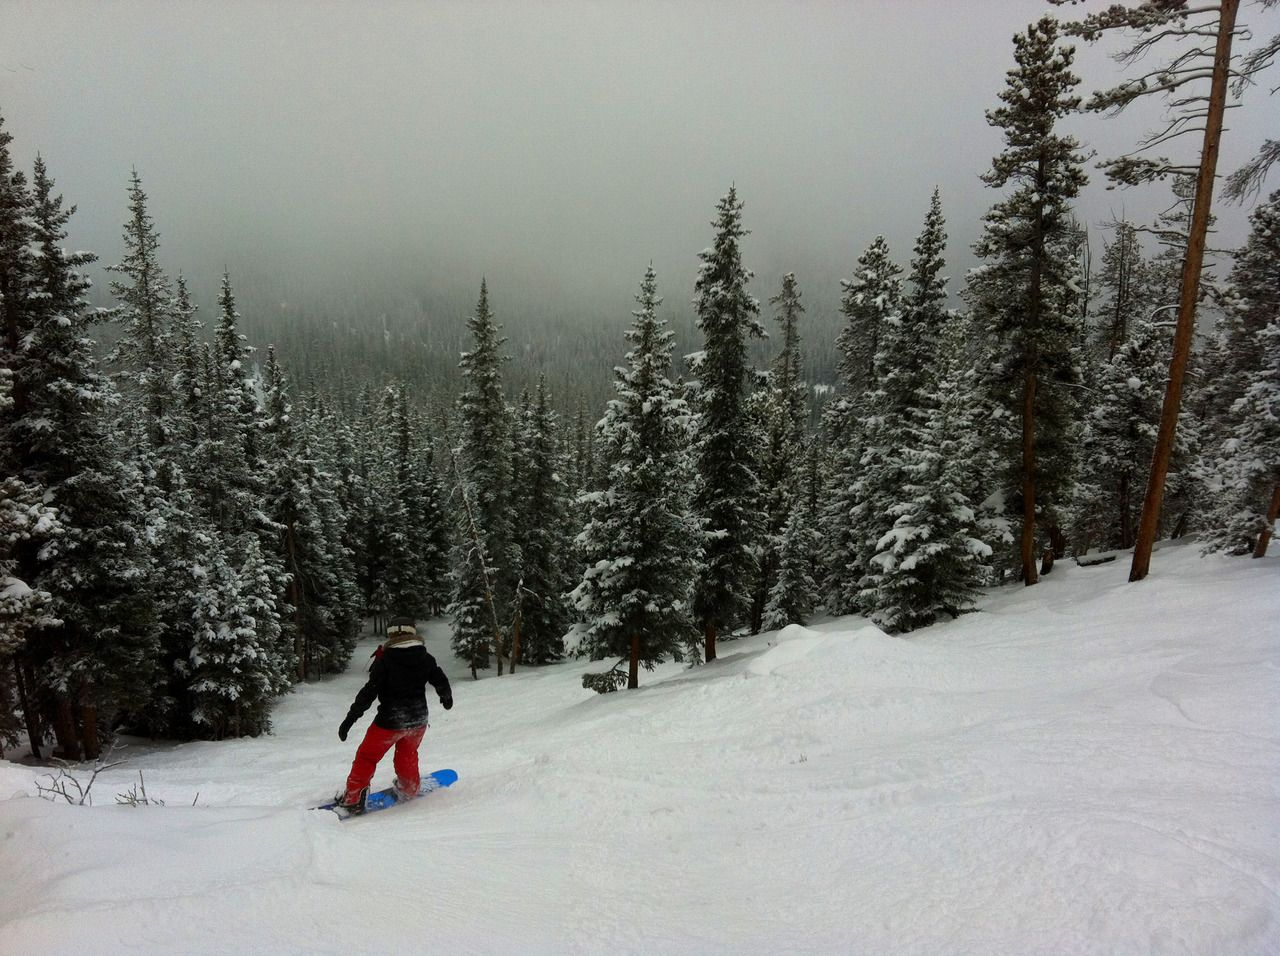 How To Save Money On Lift Tickets Keystone Vacation Rentals By Summitcove Property Management Keystone Skiing Ski Vacation Keystone Resort